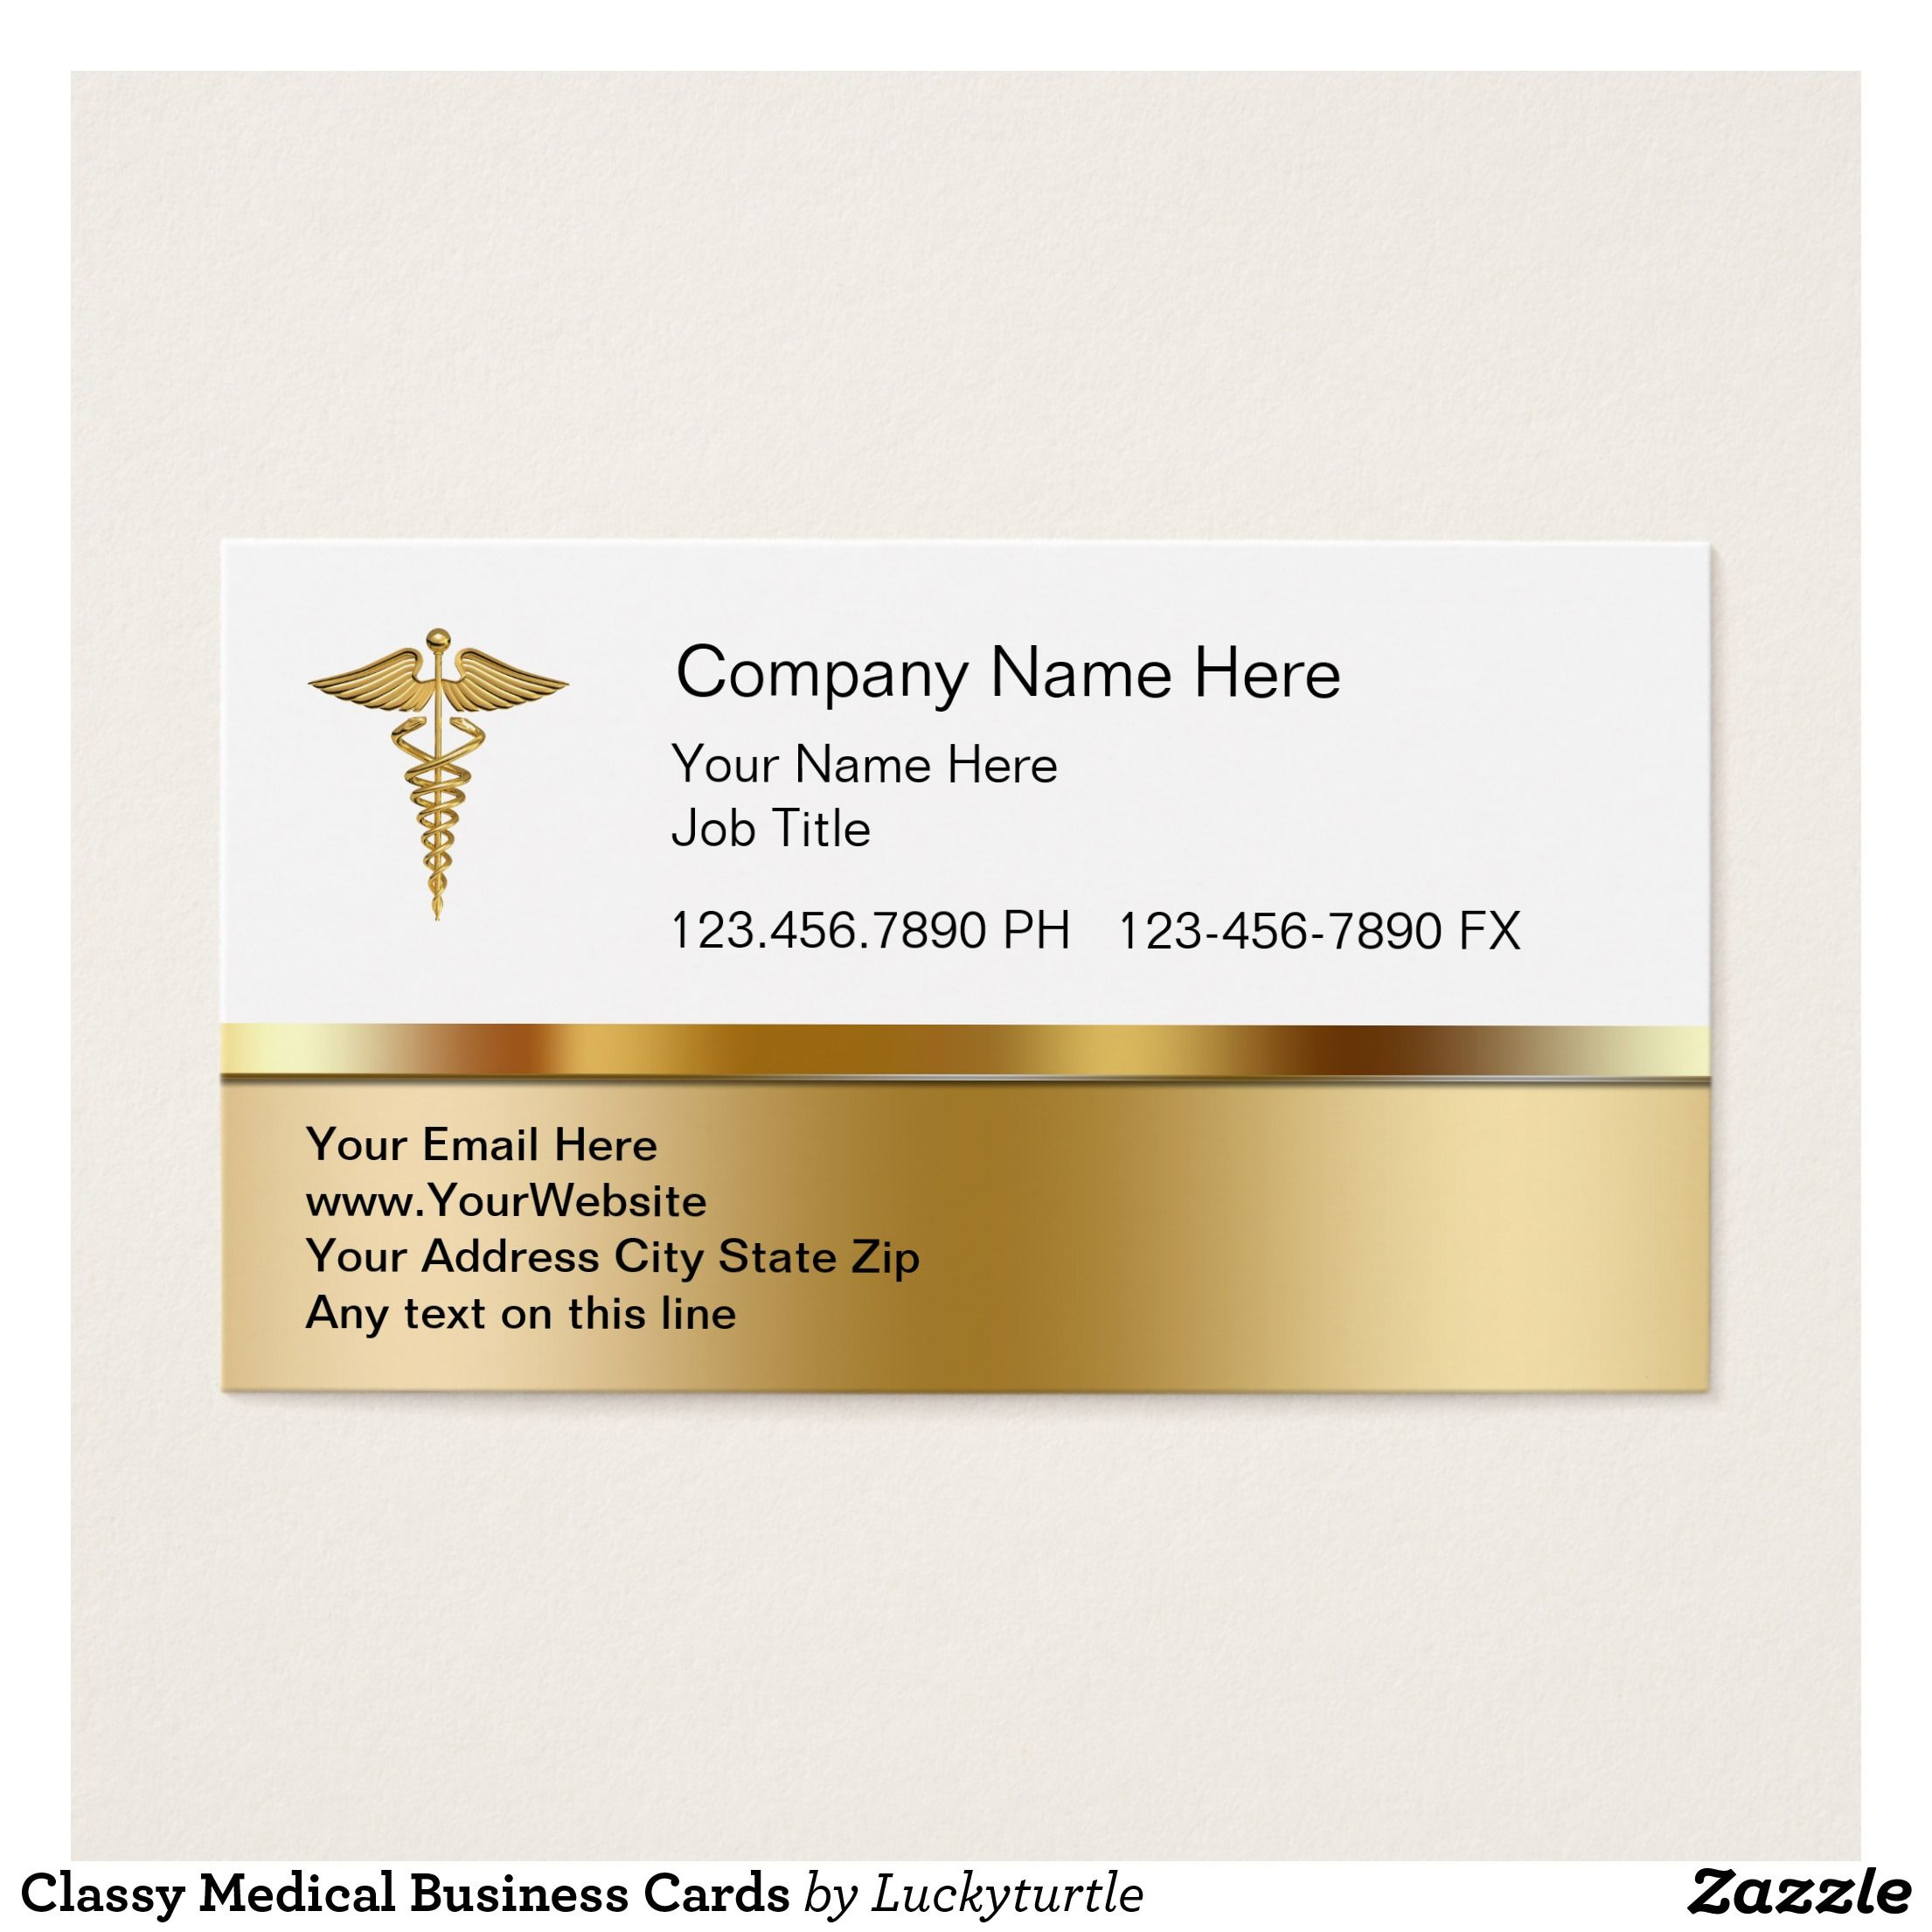 Classy Medical Business Cards | Typography | Pinterest | Business ...